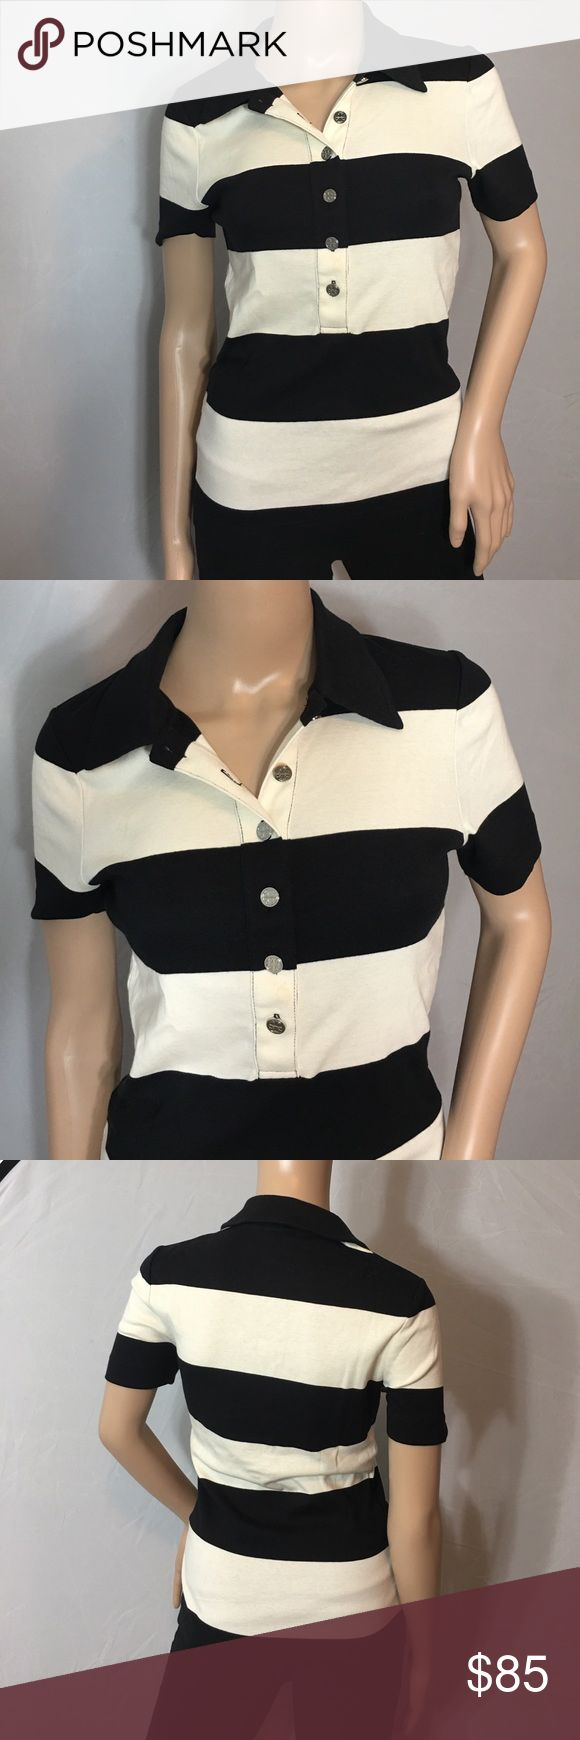 Tory Burch Striped Polo • Sz S Super cute black & white large striped polo by Tory Burch • All buttons have her trademark logo • All cotton and super soft • Great piece to have in your wardrobe!! Tory Burch Tops